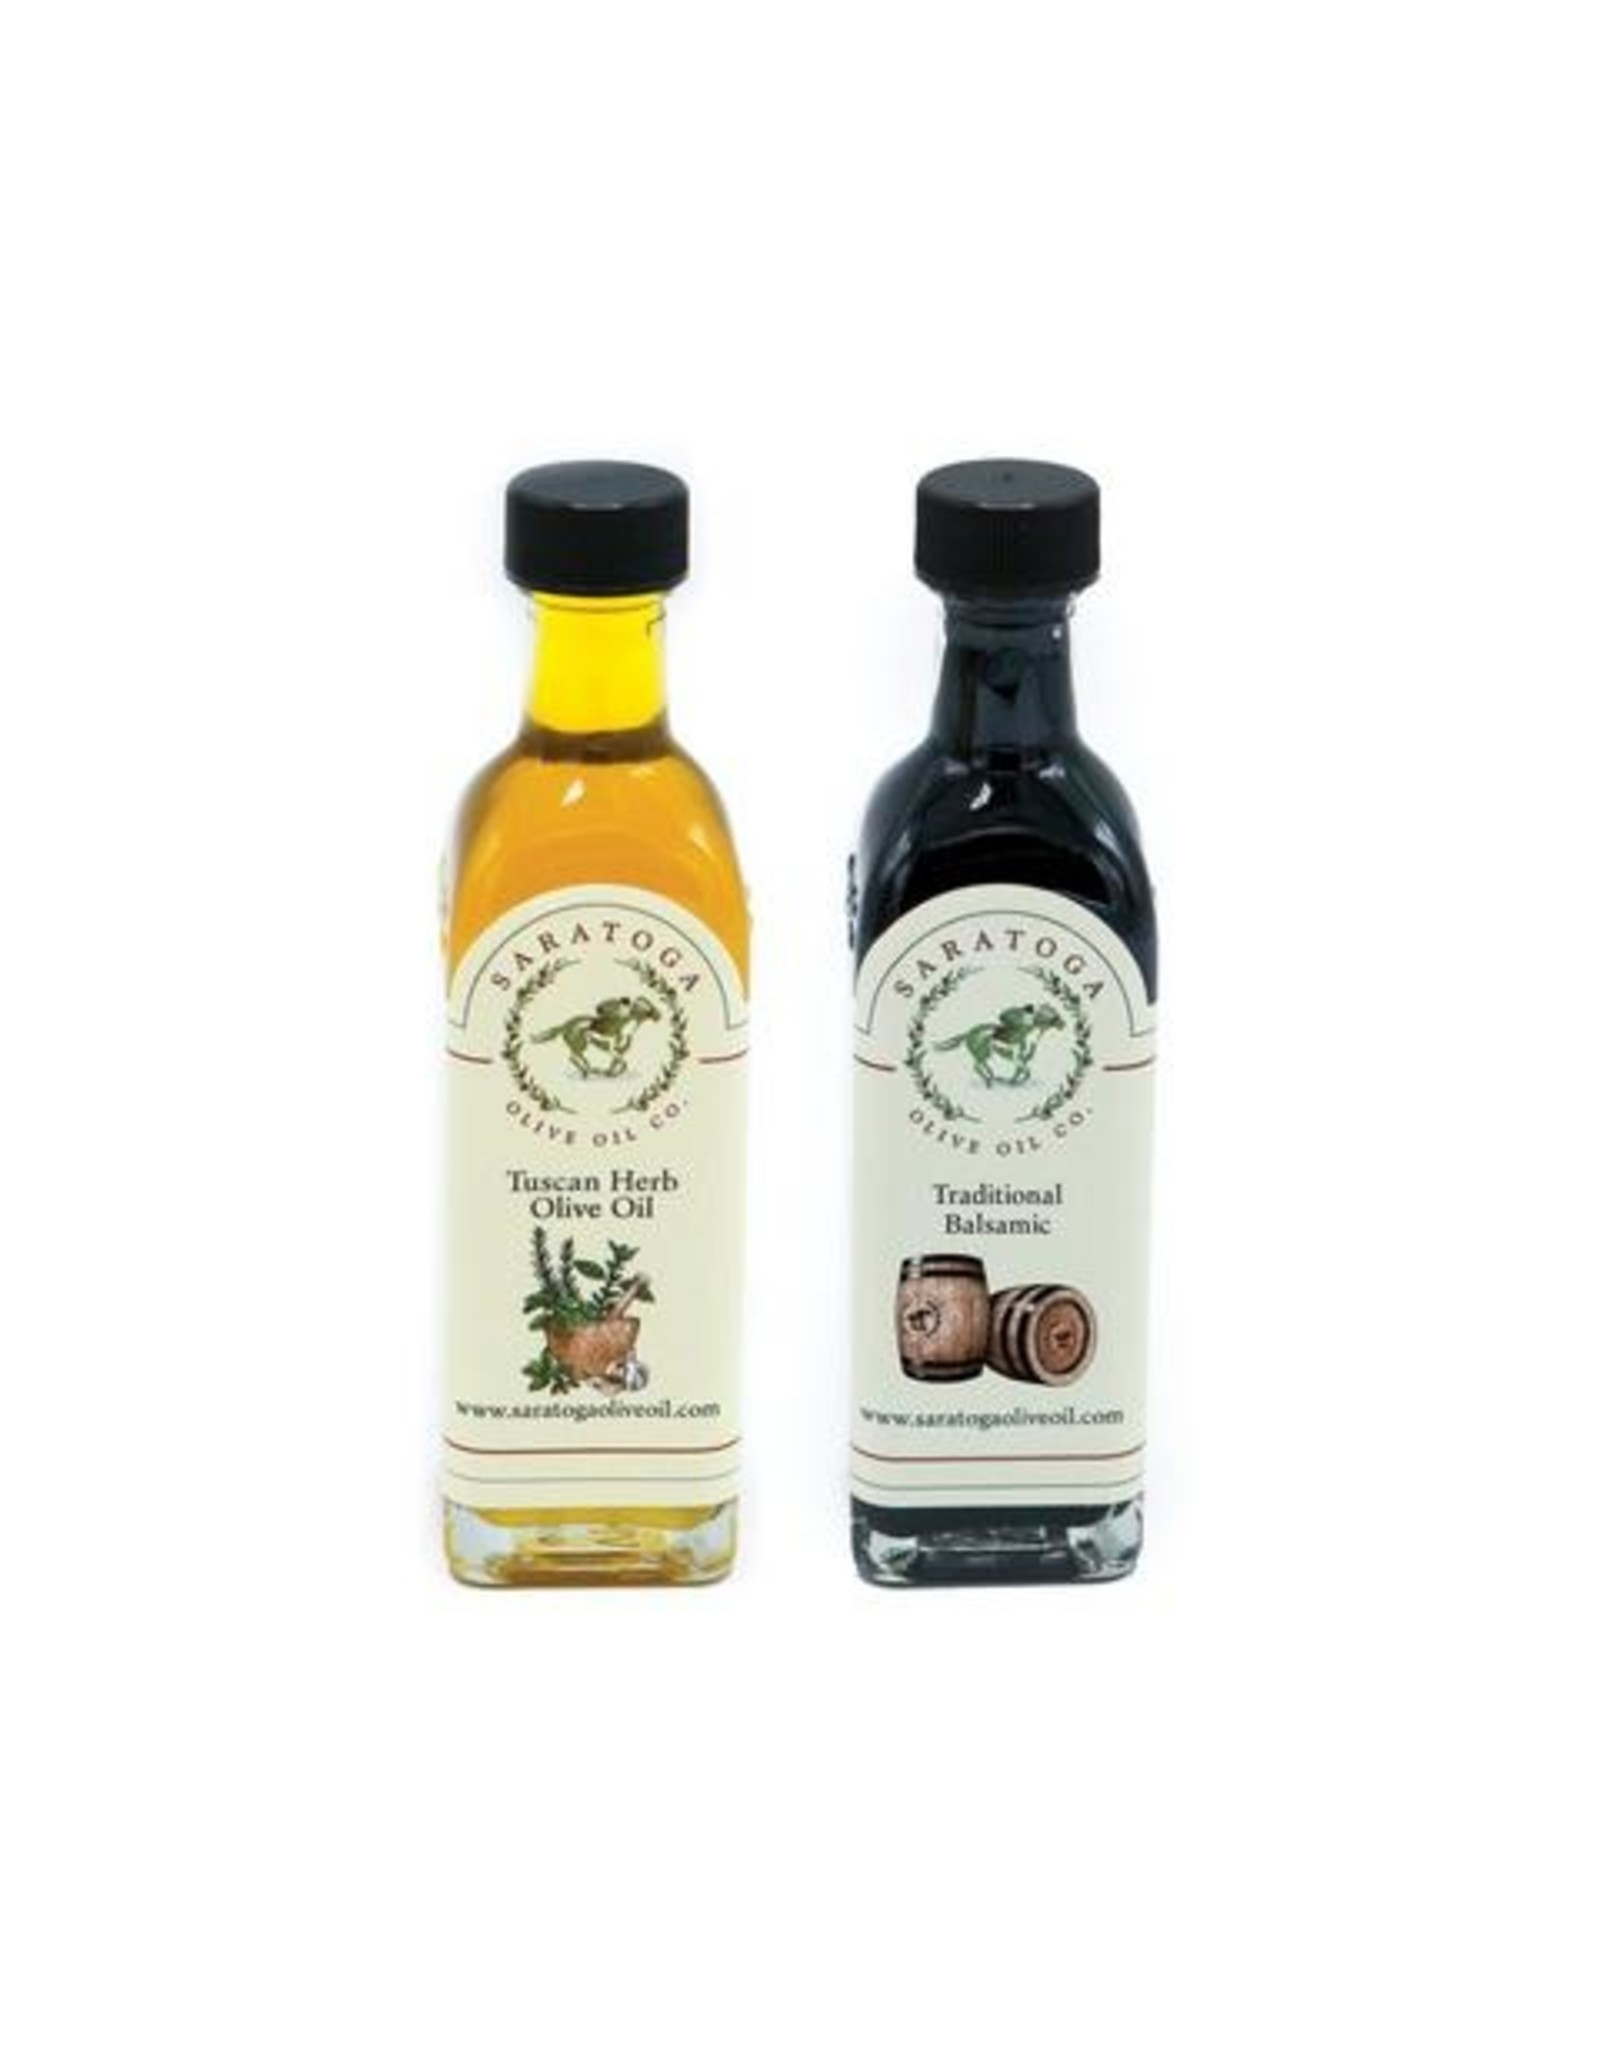 Saratoga Olive Oil Company Traditional Balsamic